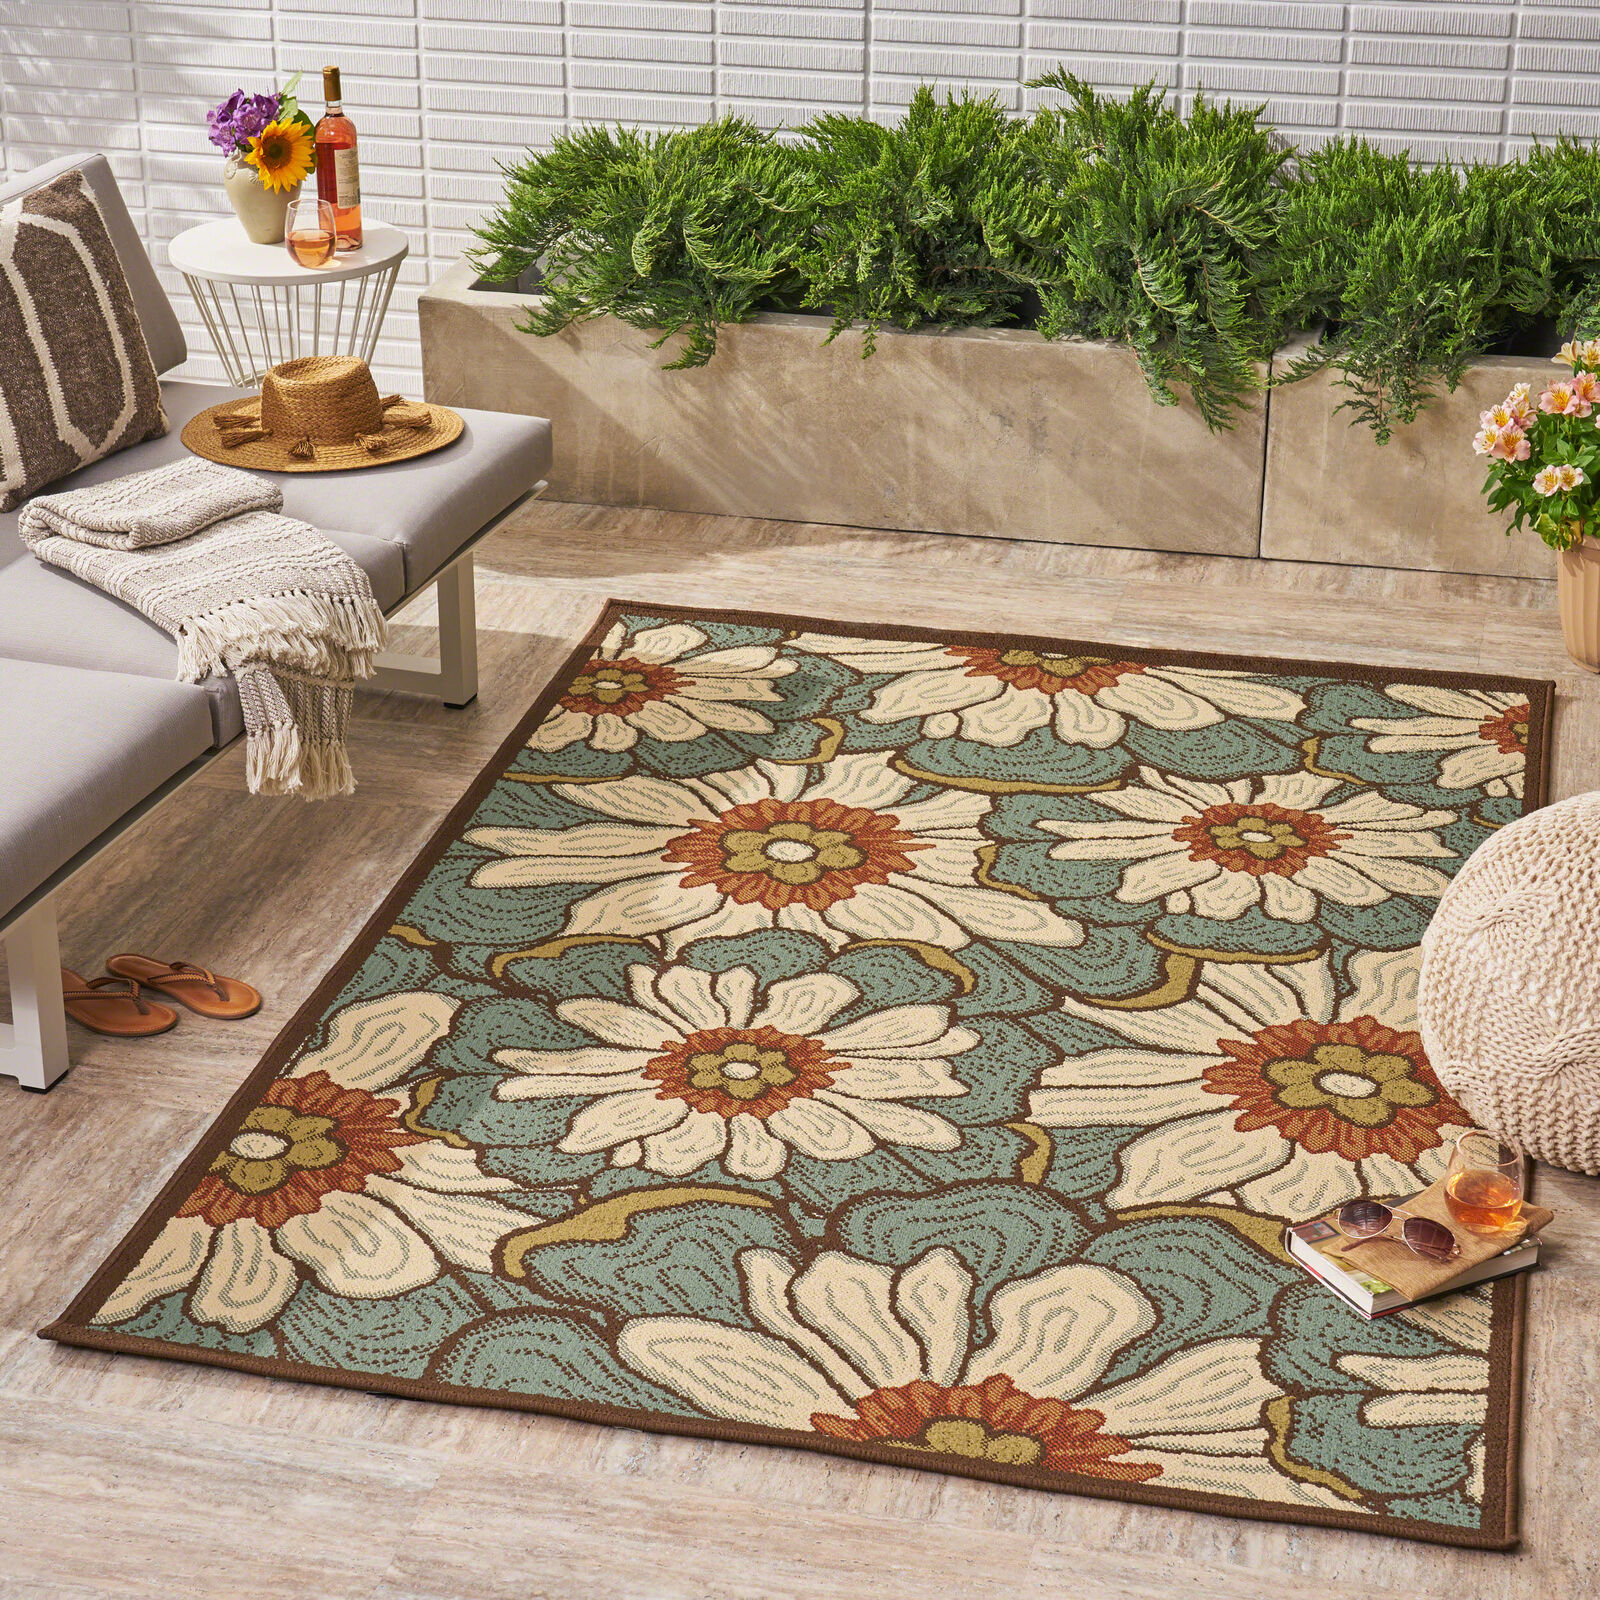 Orval Outdoor Floral Area Rug, Blue with Multicolor Area Rugs